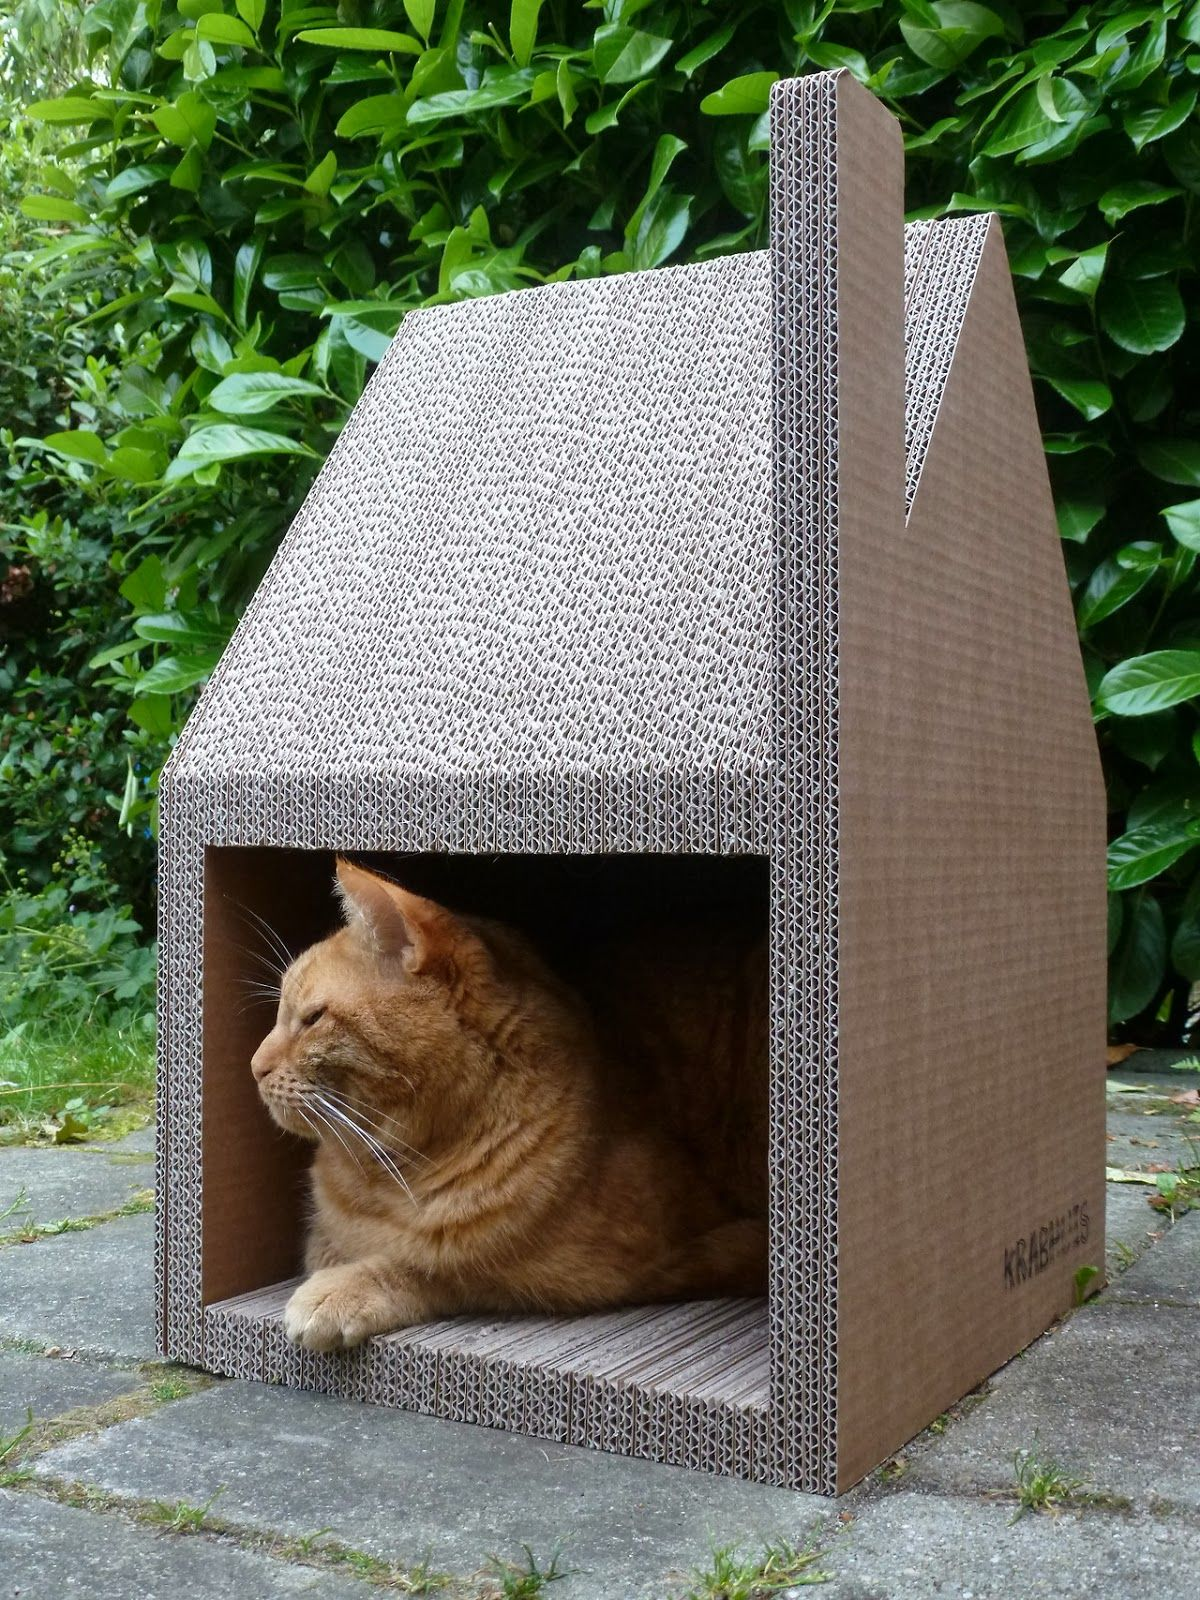 Maison pour chat design la krabhuis belle et confortable for Niche exterieur pour chat